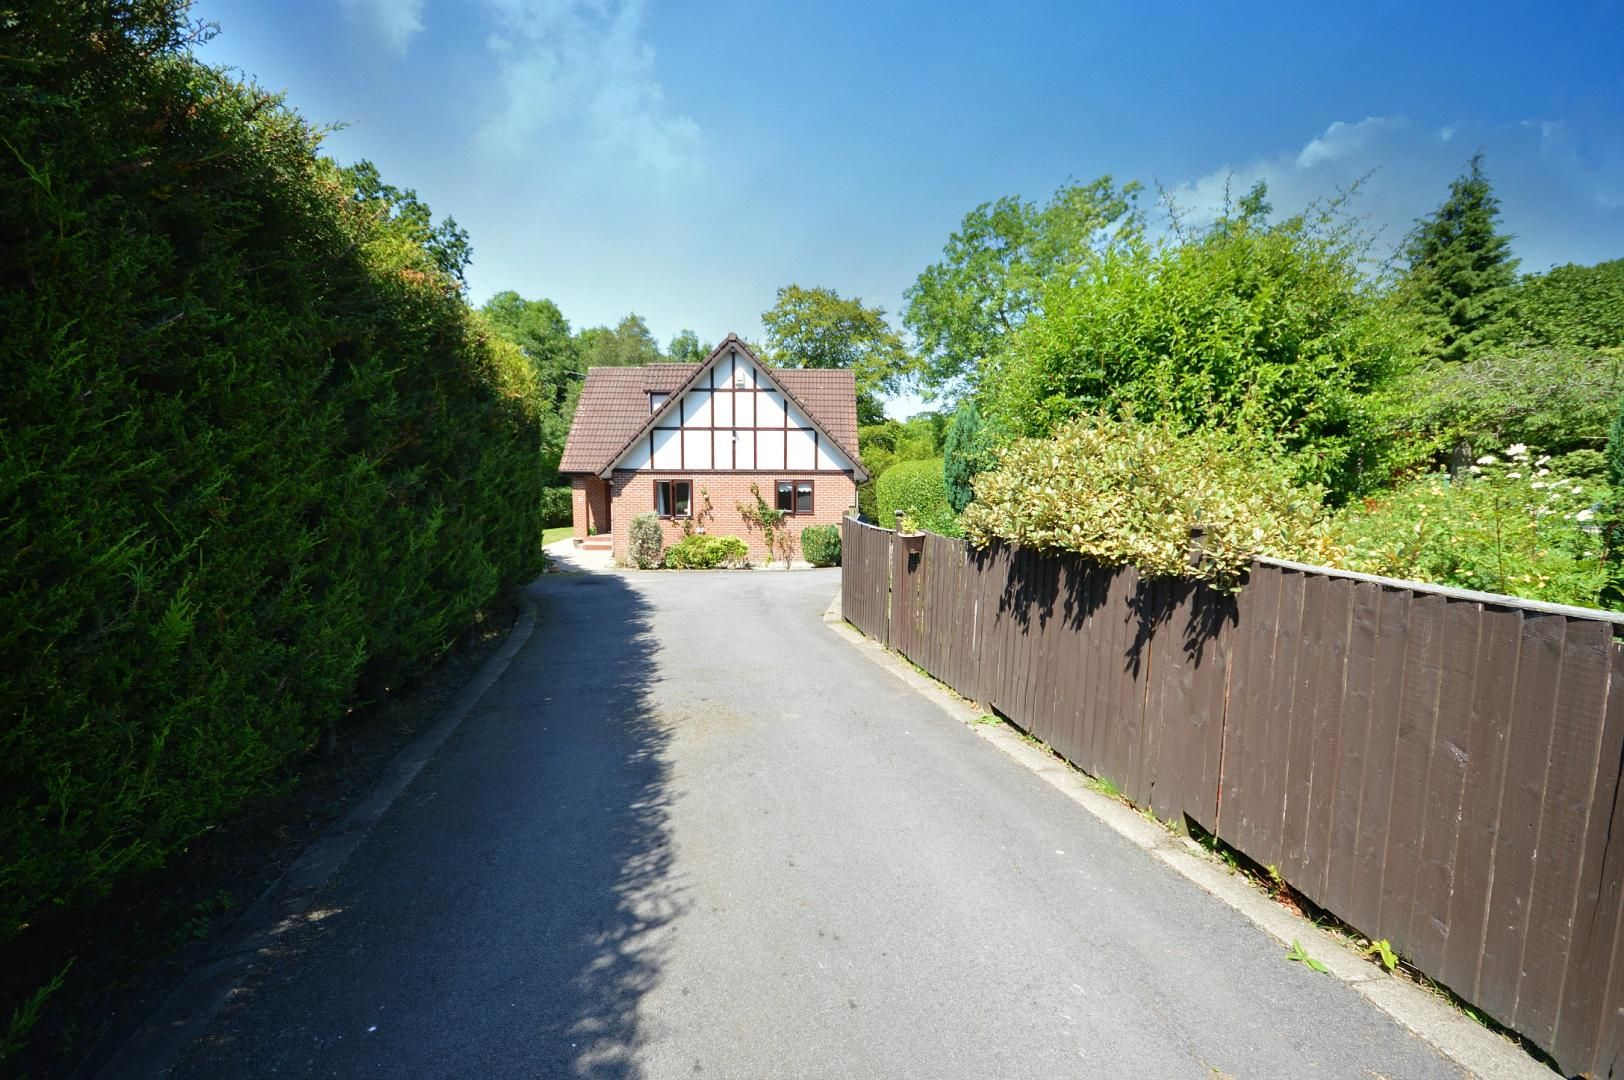 3 bed house to rent, NP4